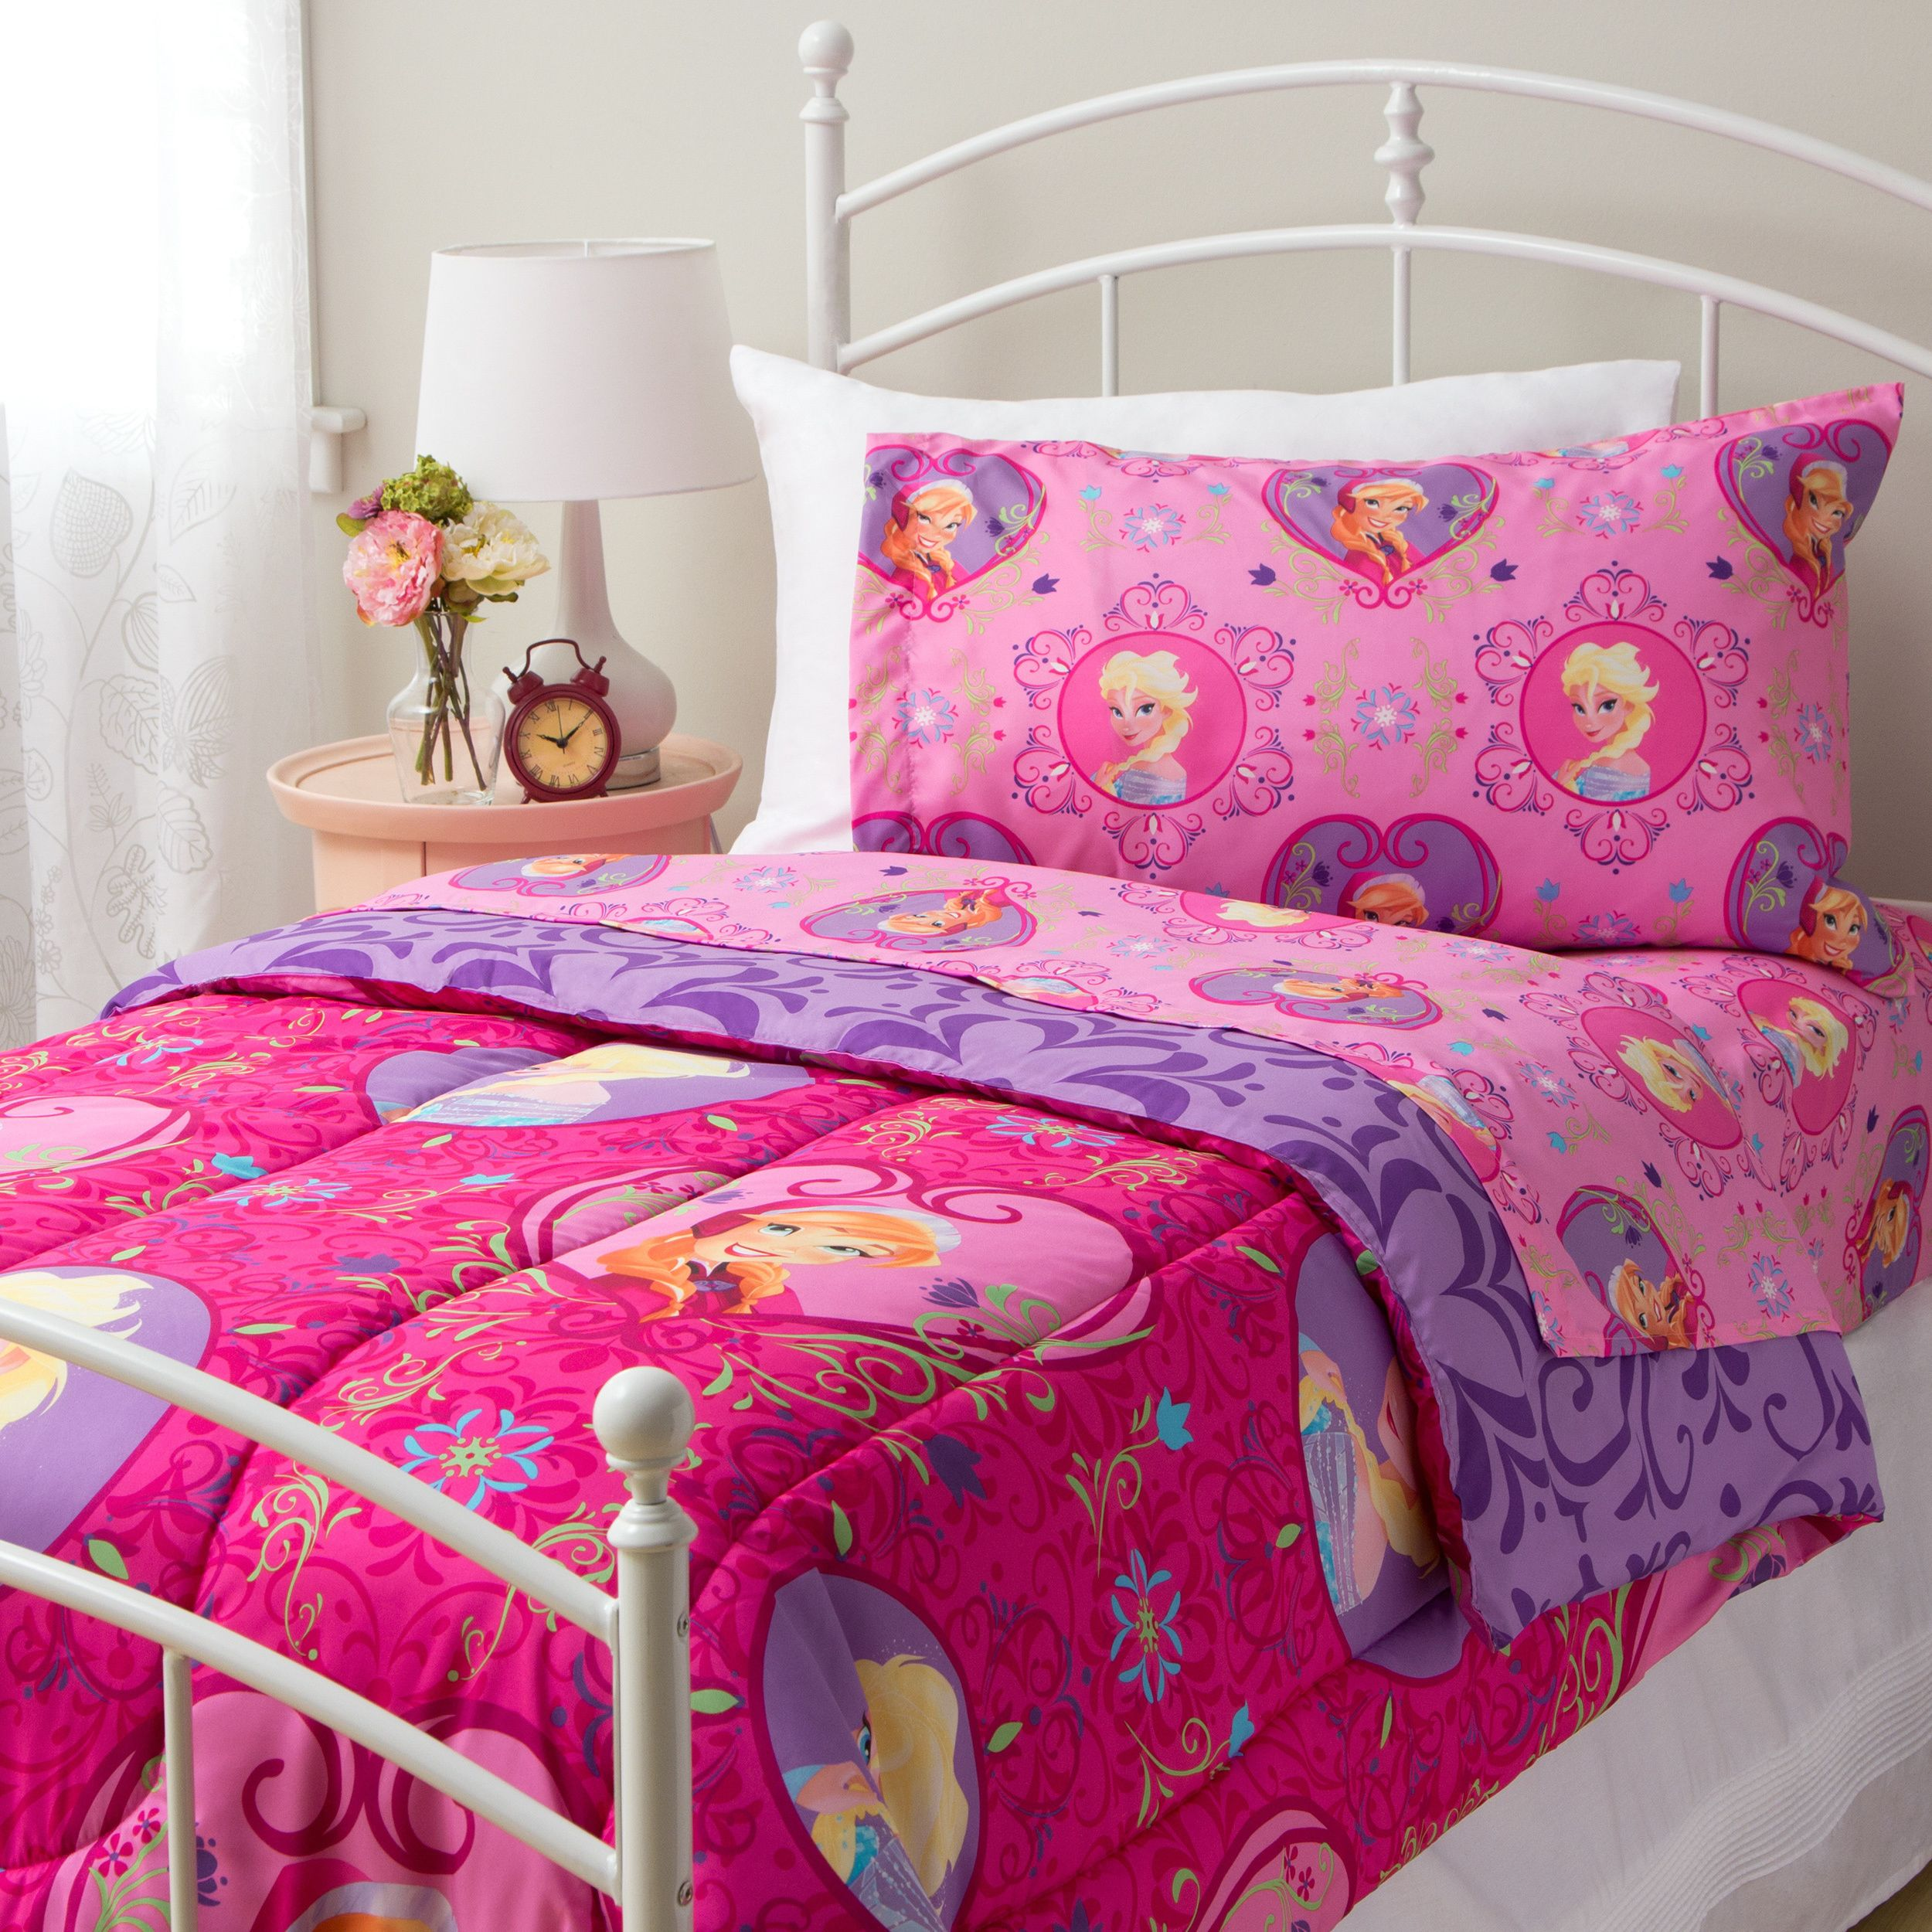 This Beautiful Twin-sized Comforter And Sheet Set Features